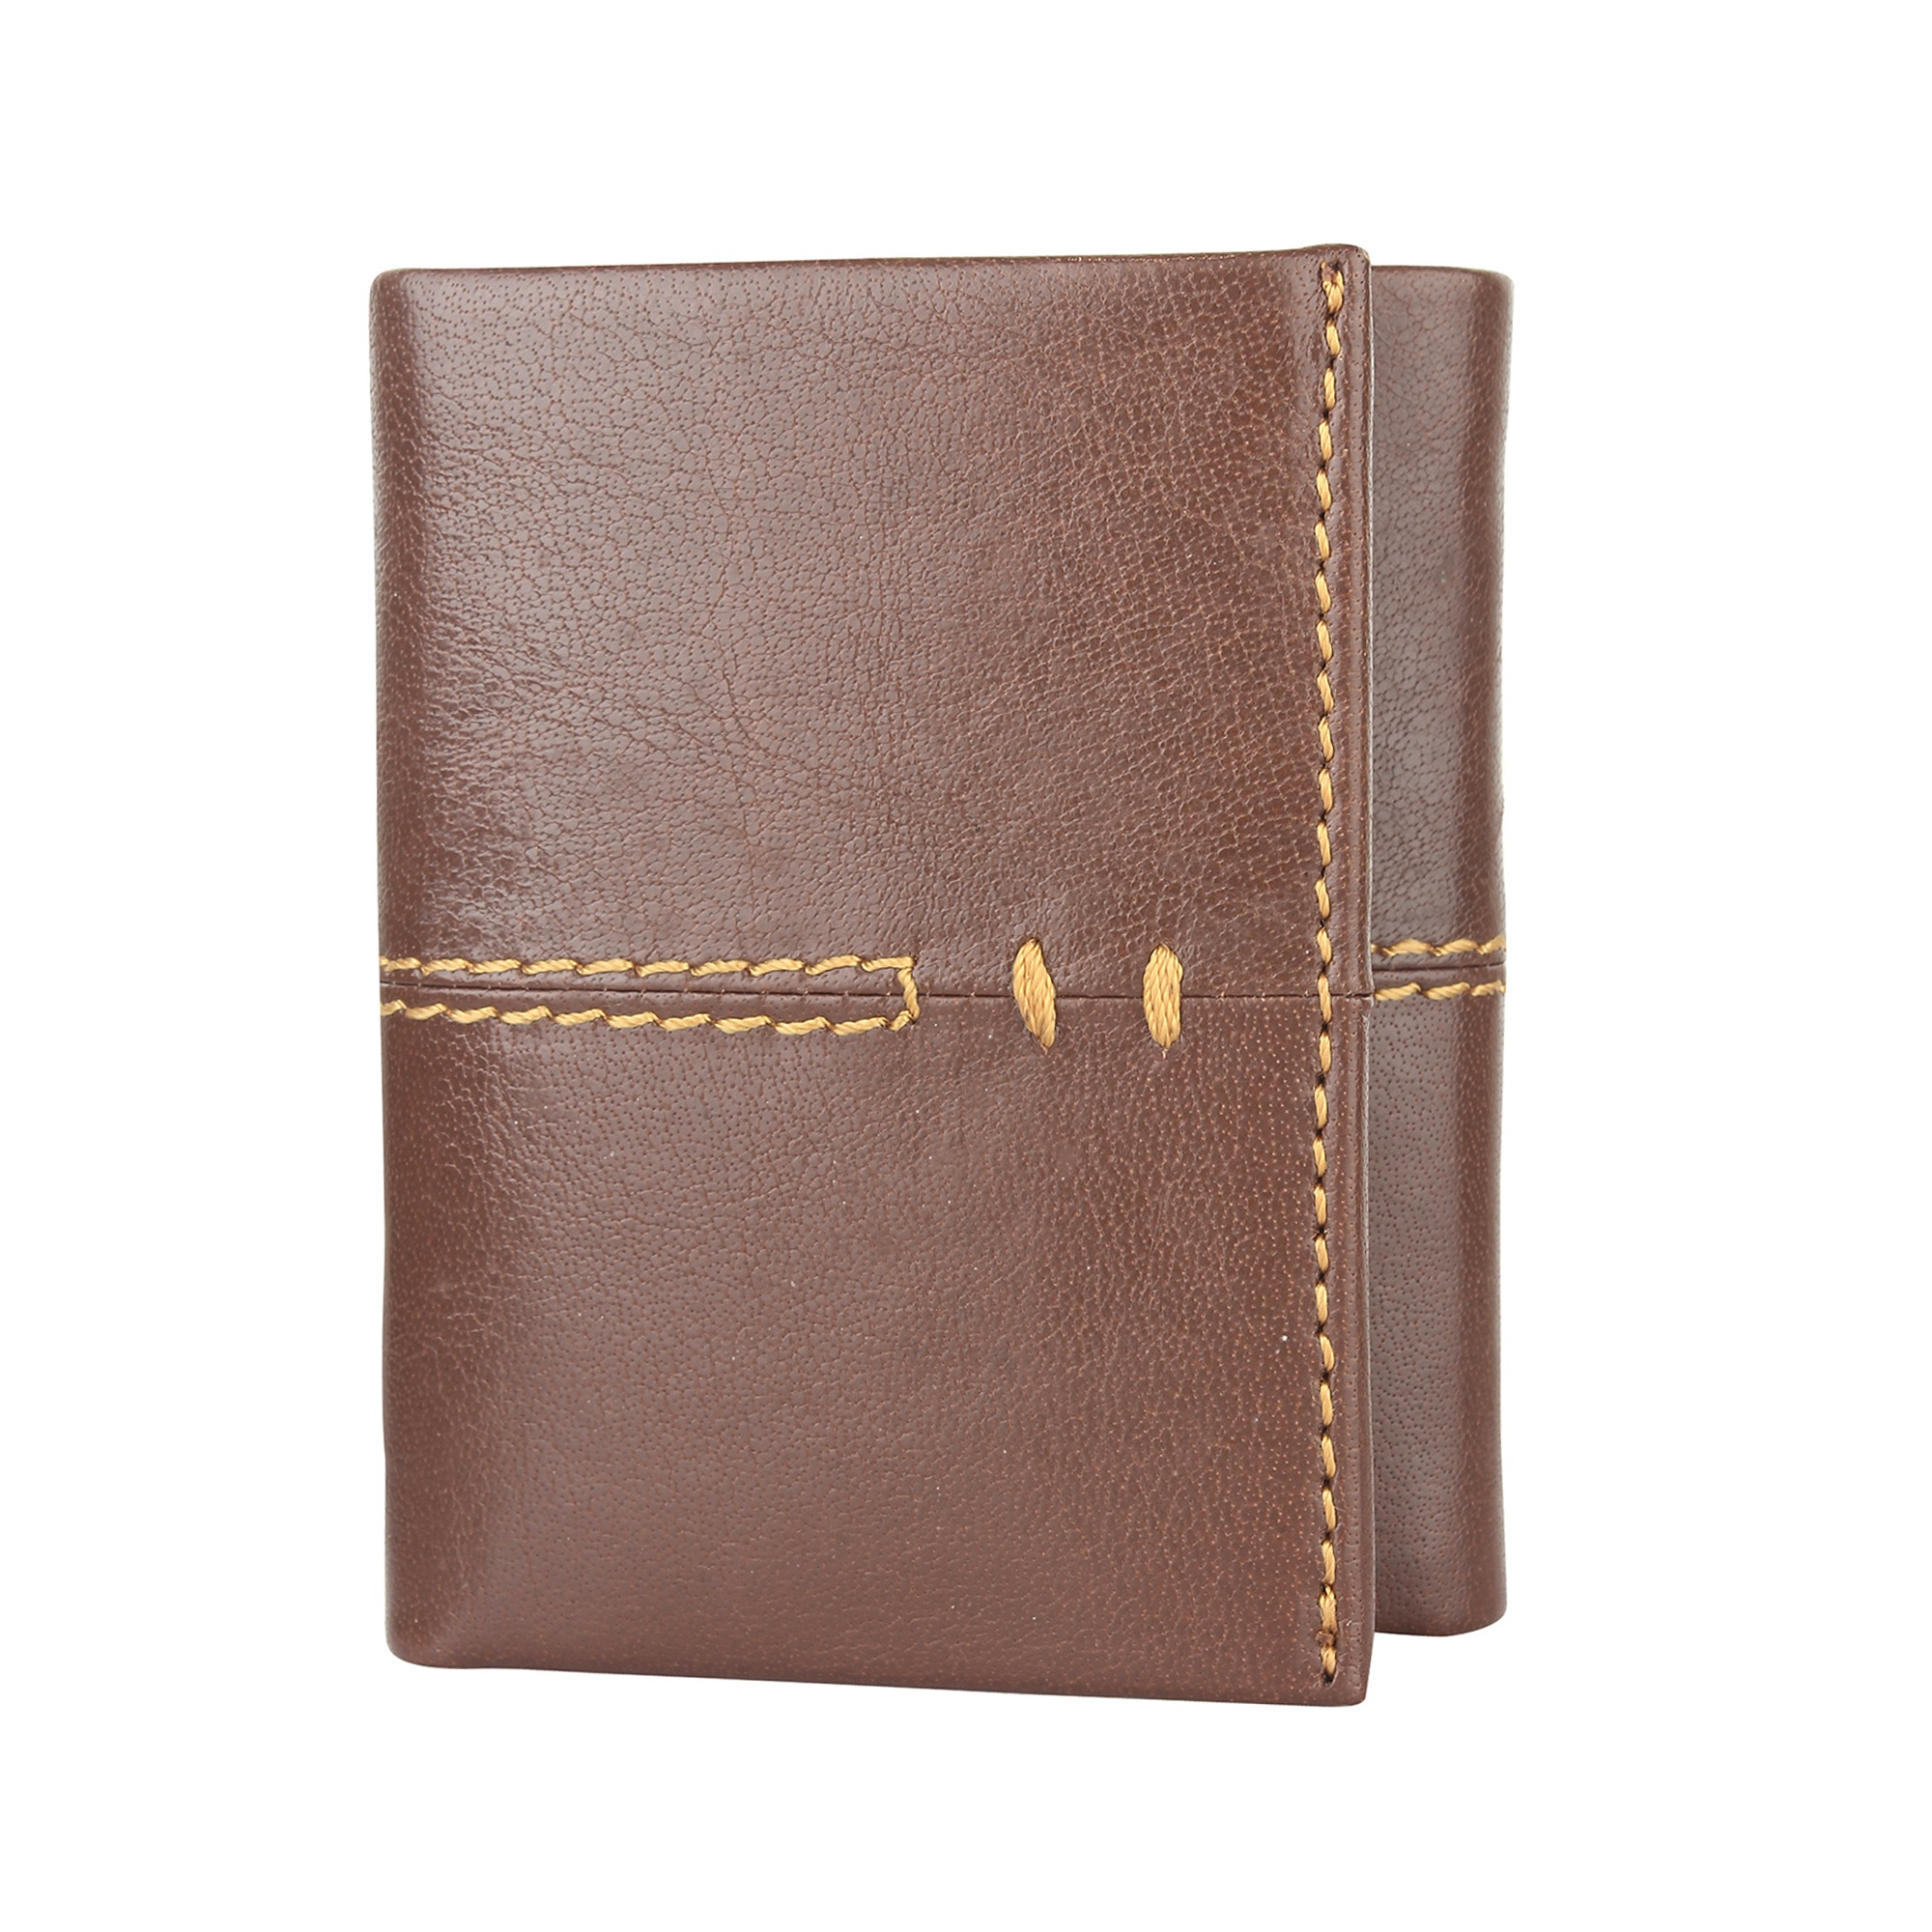 Leather Wallets Manufacturers in Ukraine, Leather Wallets Suppliers in Ukraine, Leather Wallets Wholesalers in Ukraine, Leather Wallets Traders in Ukraine